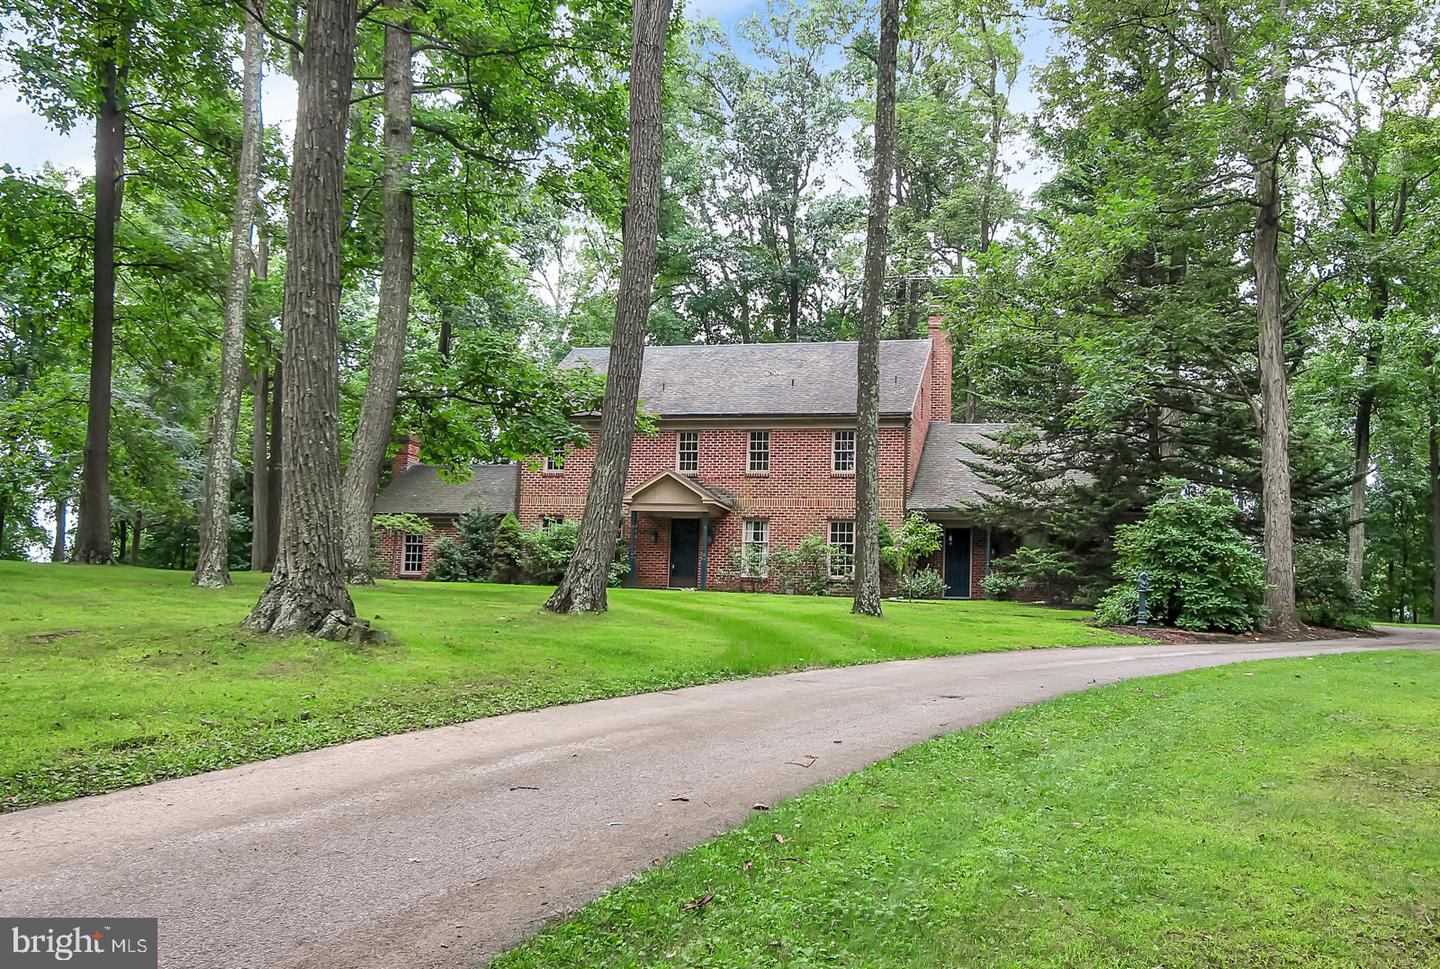 715 VALLEY DR, DALLASTOWN, PA 17313